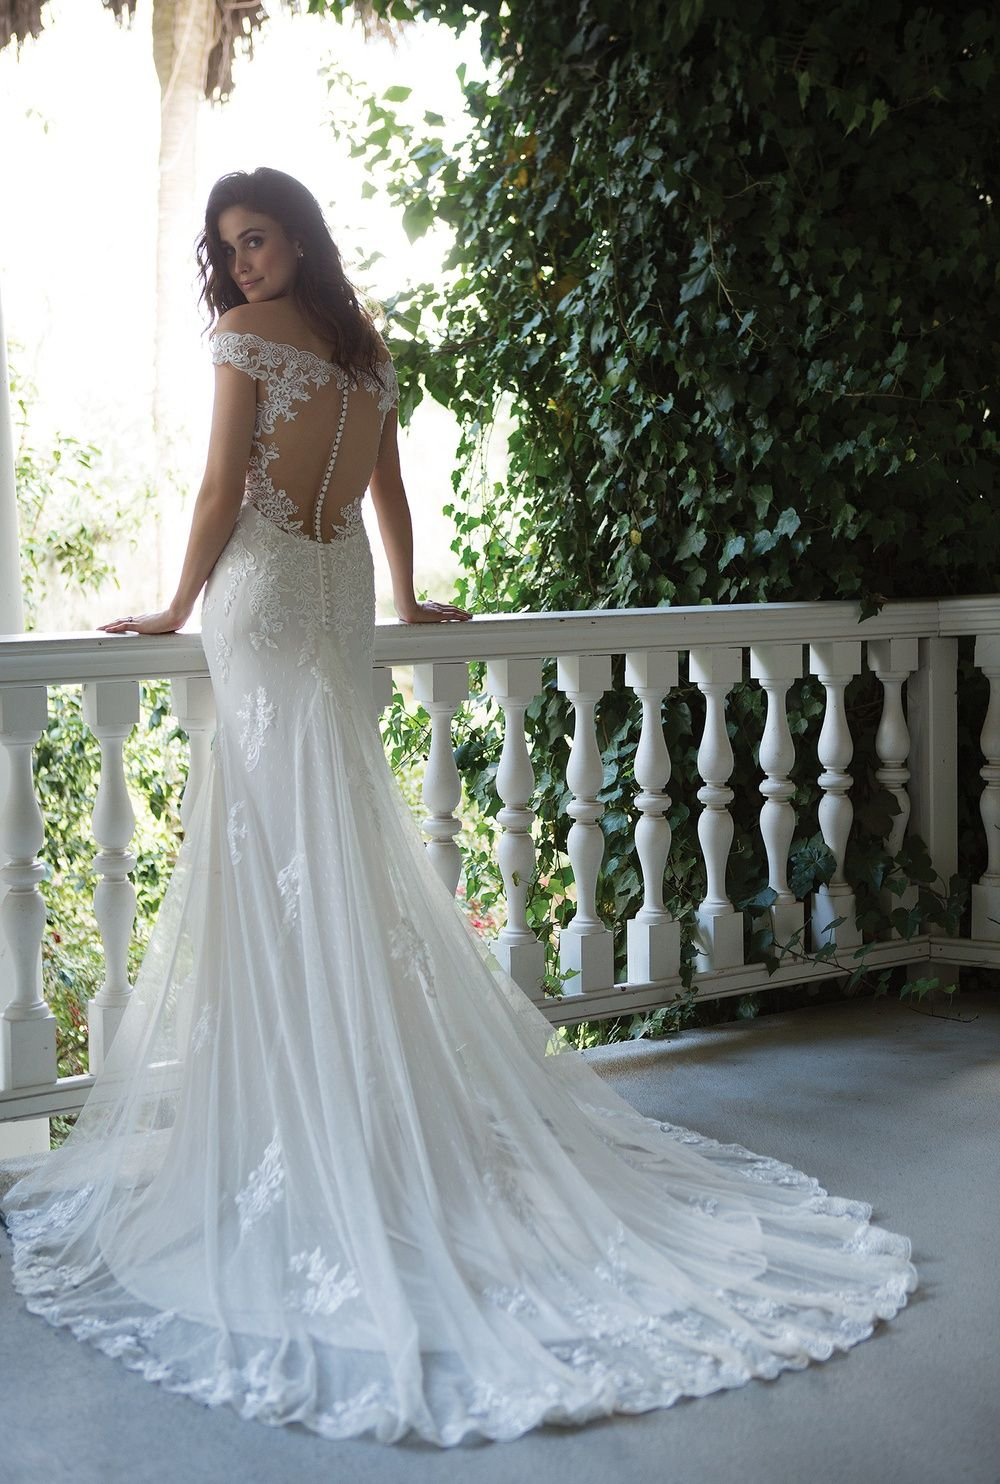 Fantasy Bridal | Contemporary and Modest Bridal Gowns for Utah ...